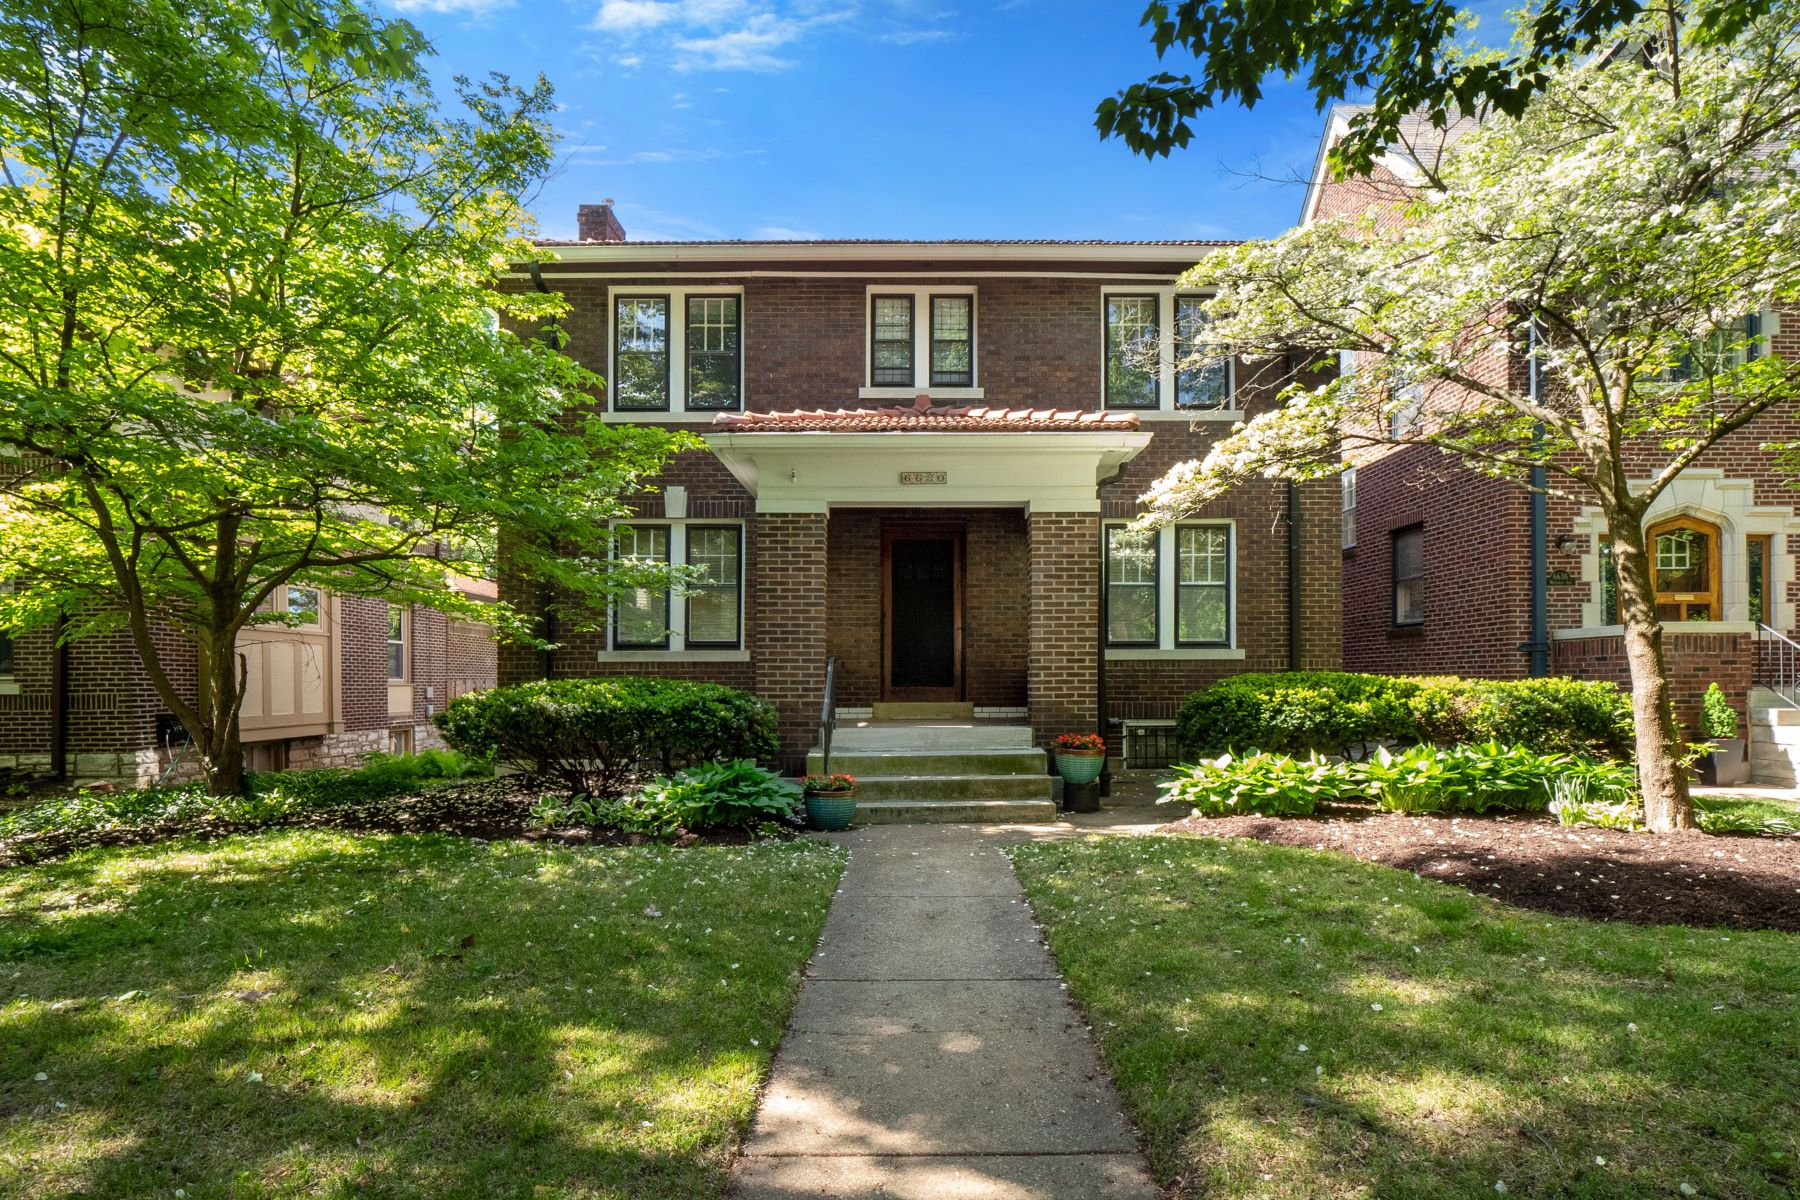 Single Family Homes for Sale at Ames Place's Most Charming Home 6630 Waterman Avenue University City, Missouri 63130 United States